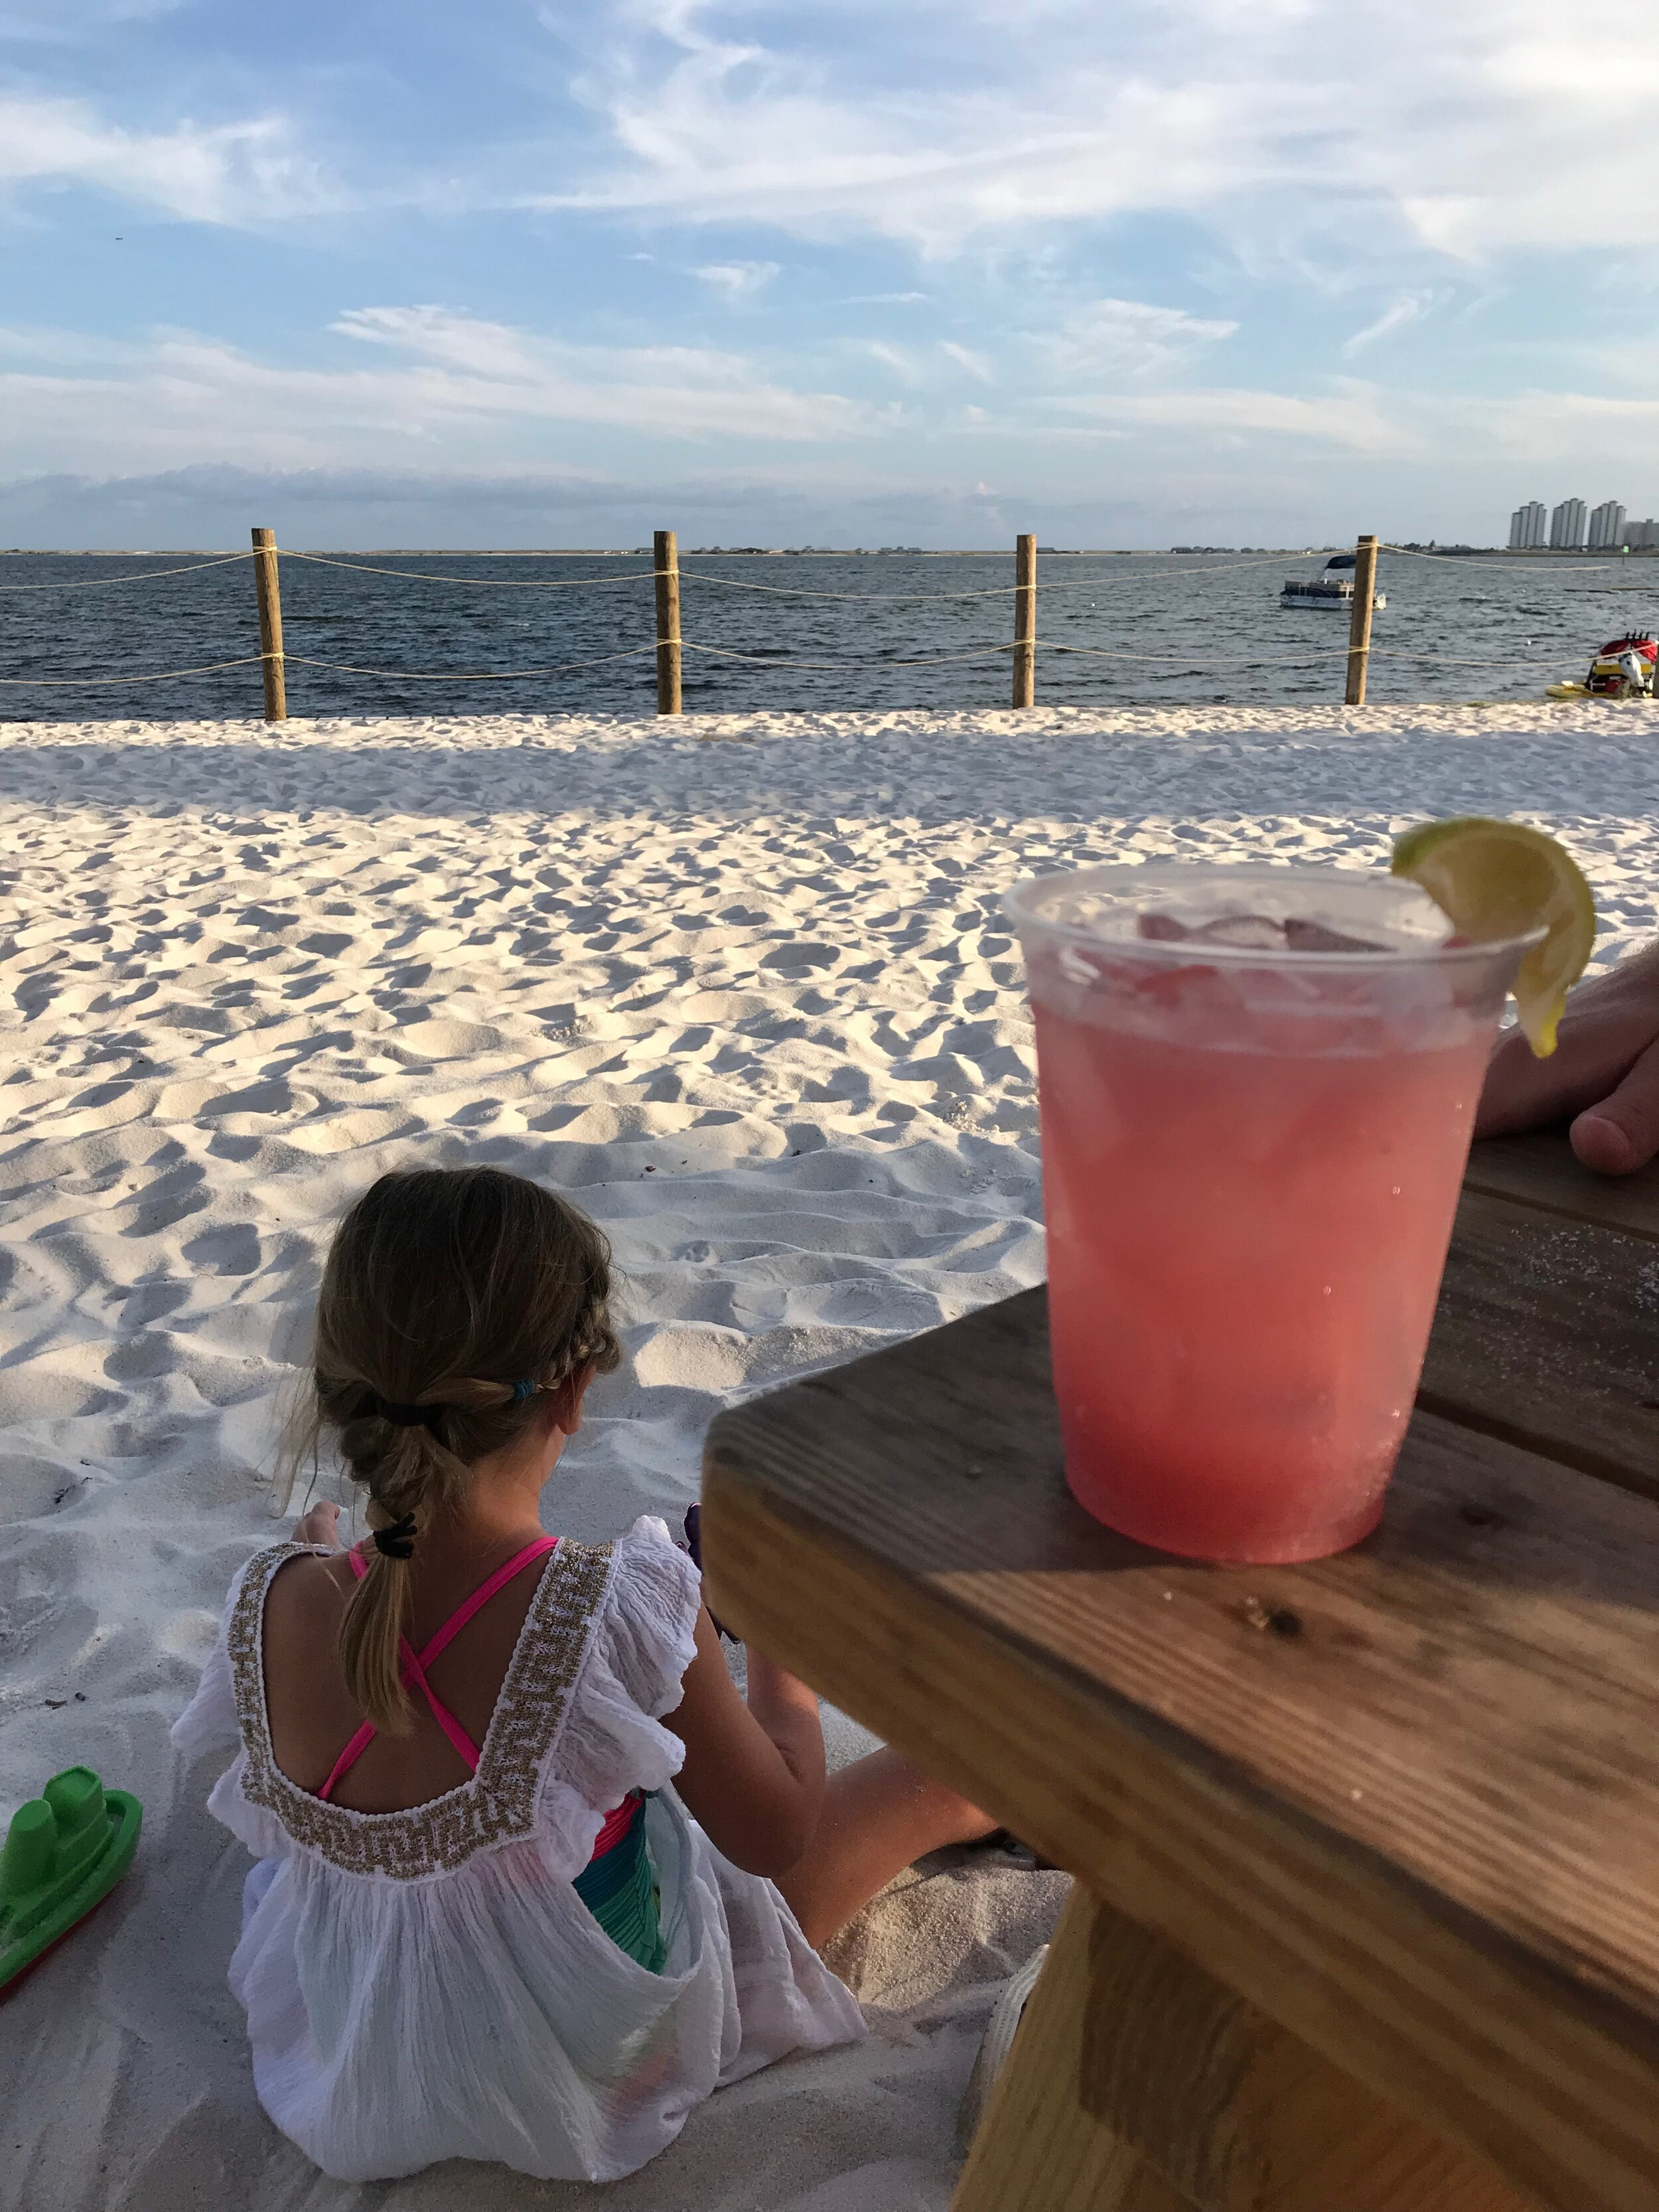 The Views of the Santa Rosa sound from our table at Dewey Destin's Navarre